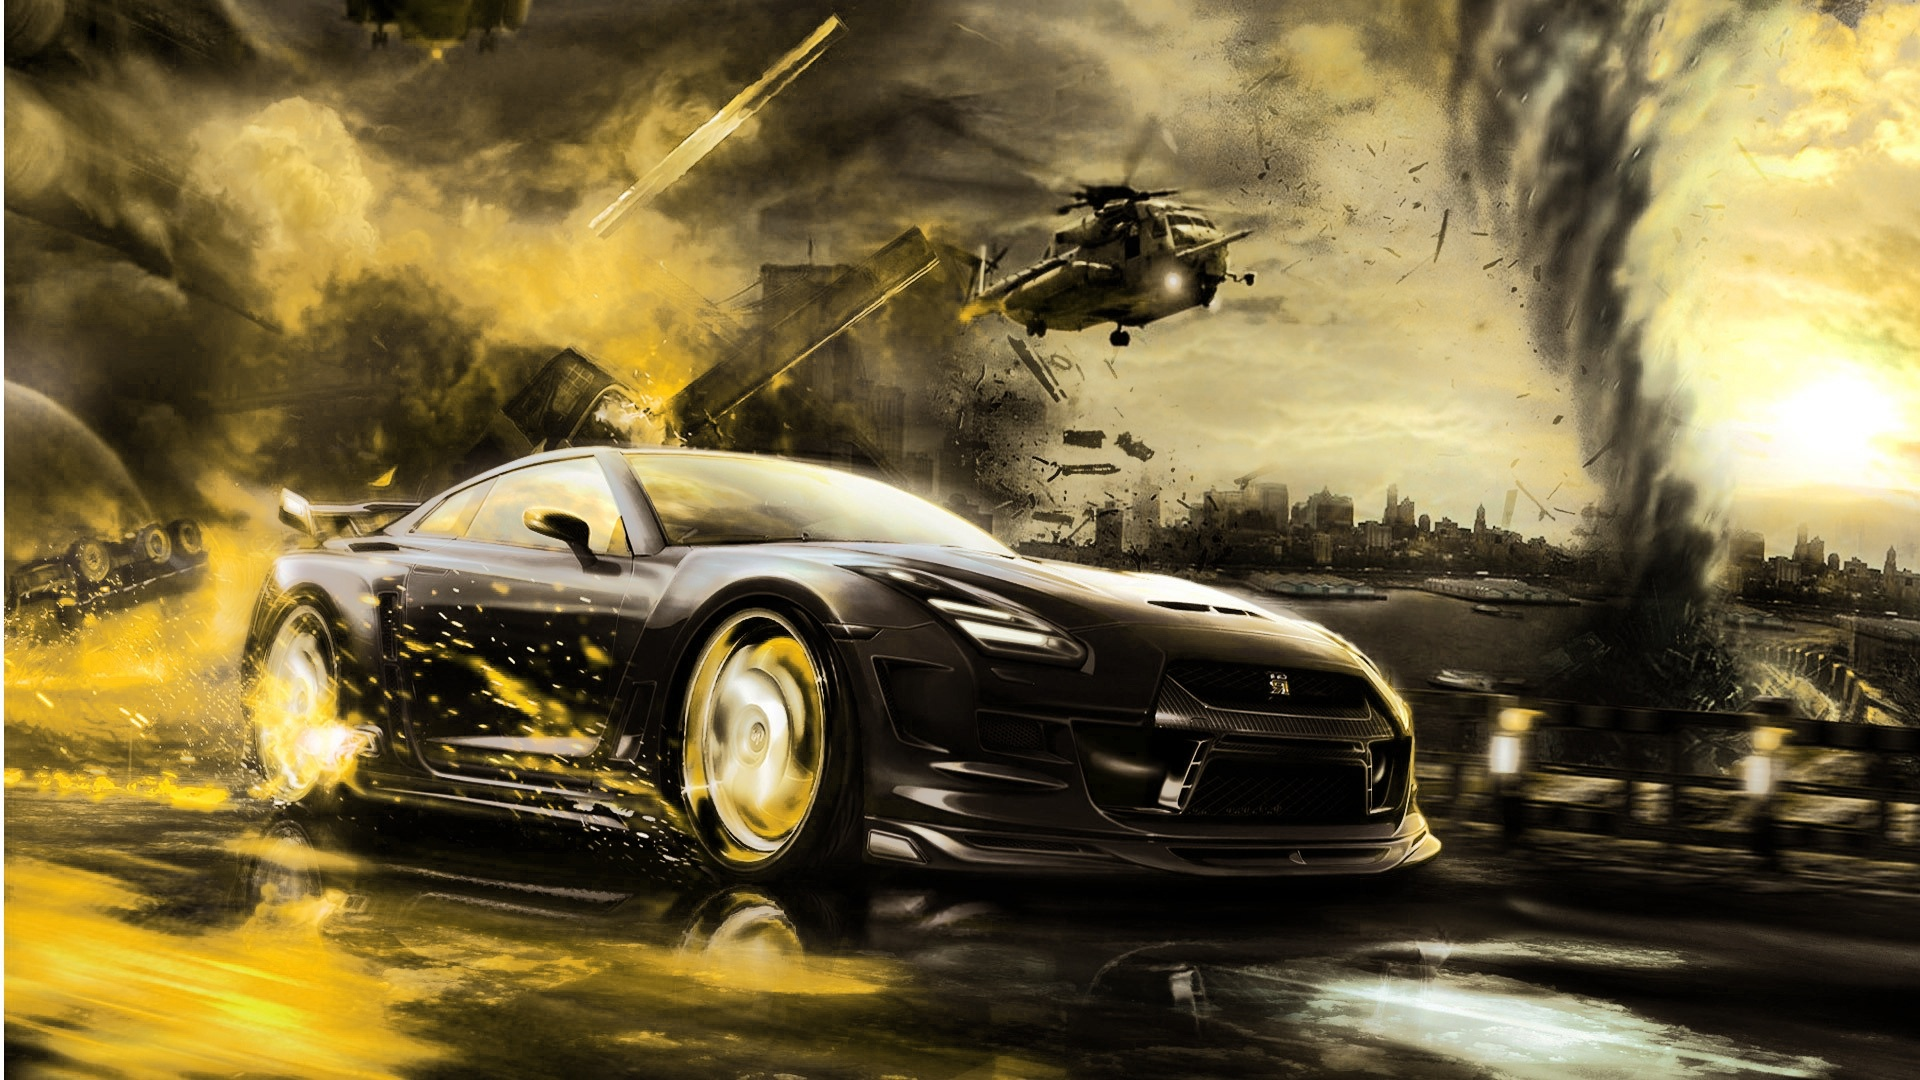 Cool Car Background Wallpapers 1920x1080